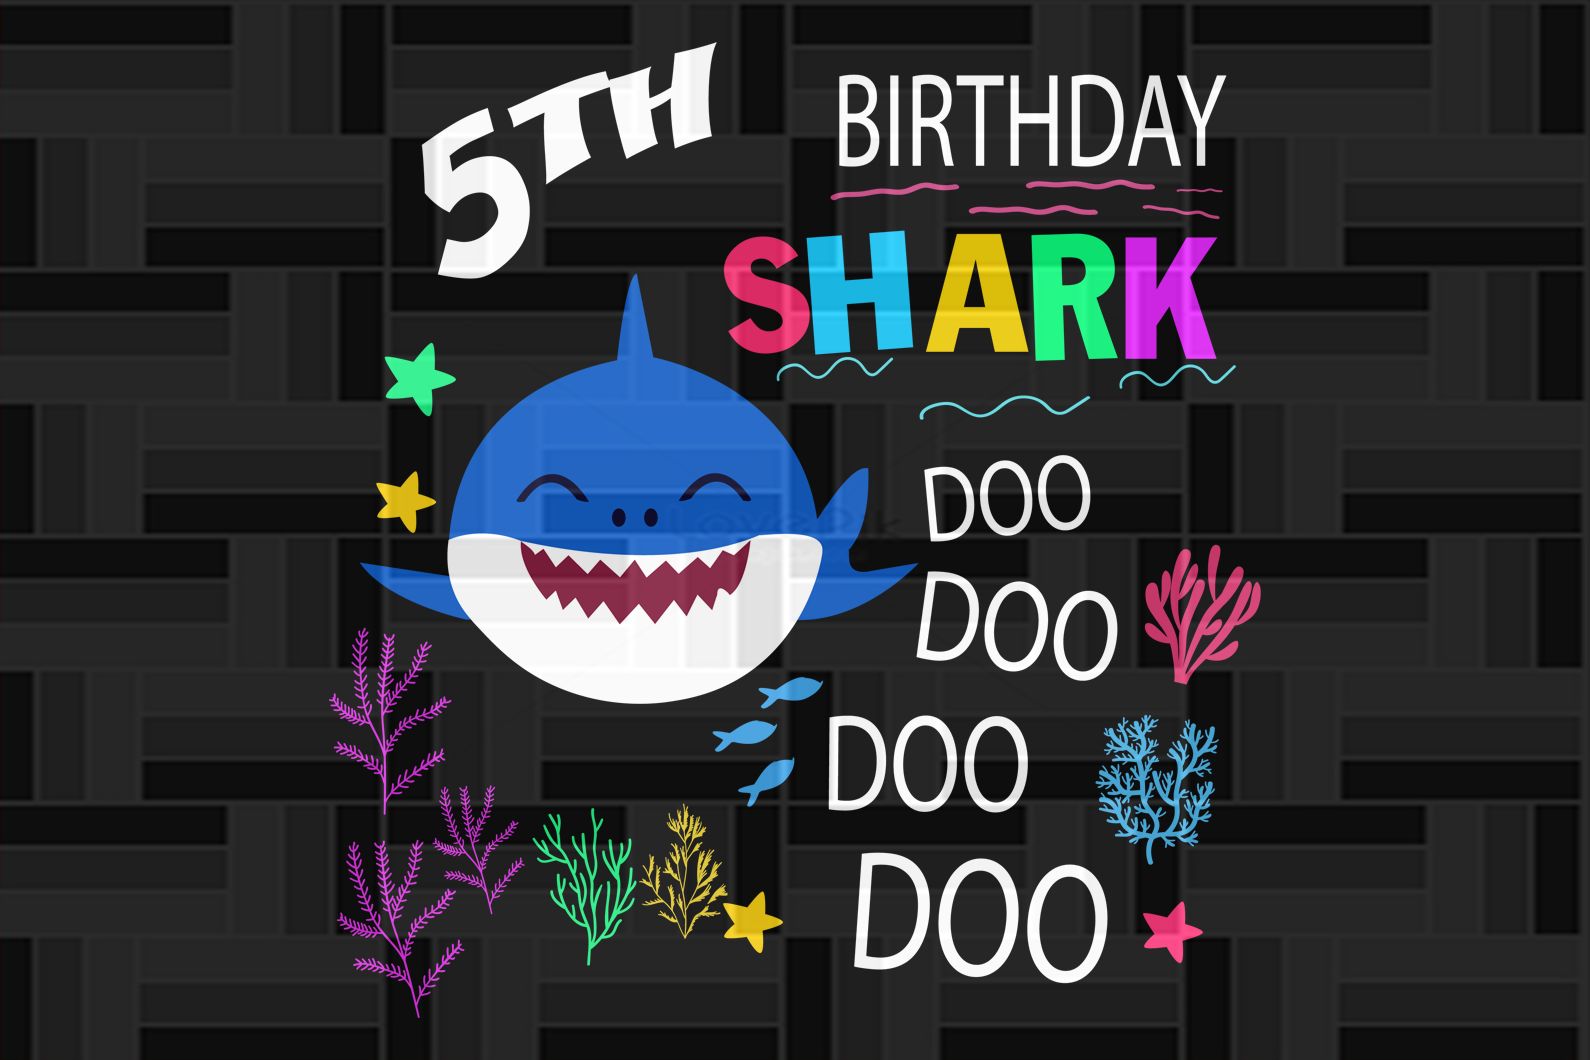 5th birthday shark doo, born in 2015, 2014 svg, 5th birthday svg, 5th birthday gift, 5th birthday shirt, birthday anniversary, birthday party, shark svg, shark silhouette, cute shark, gift for kids, gift from parents, digital file, vinyl for cricut,